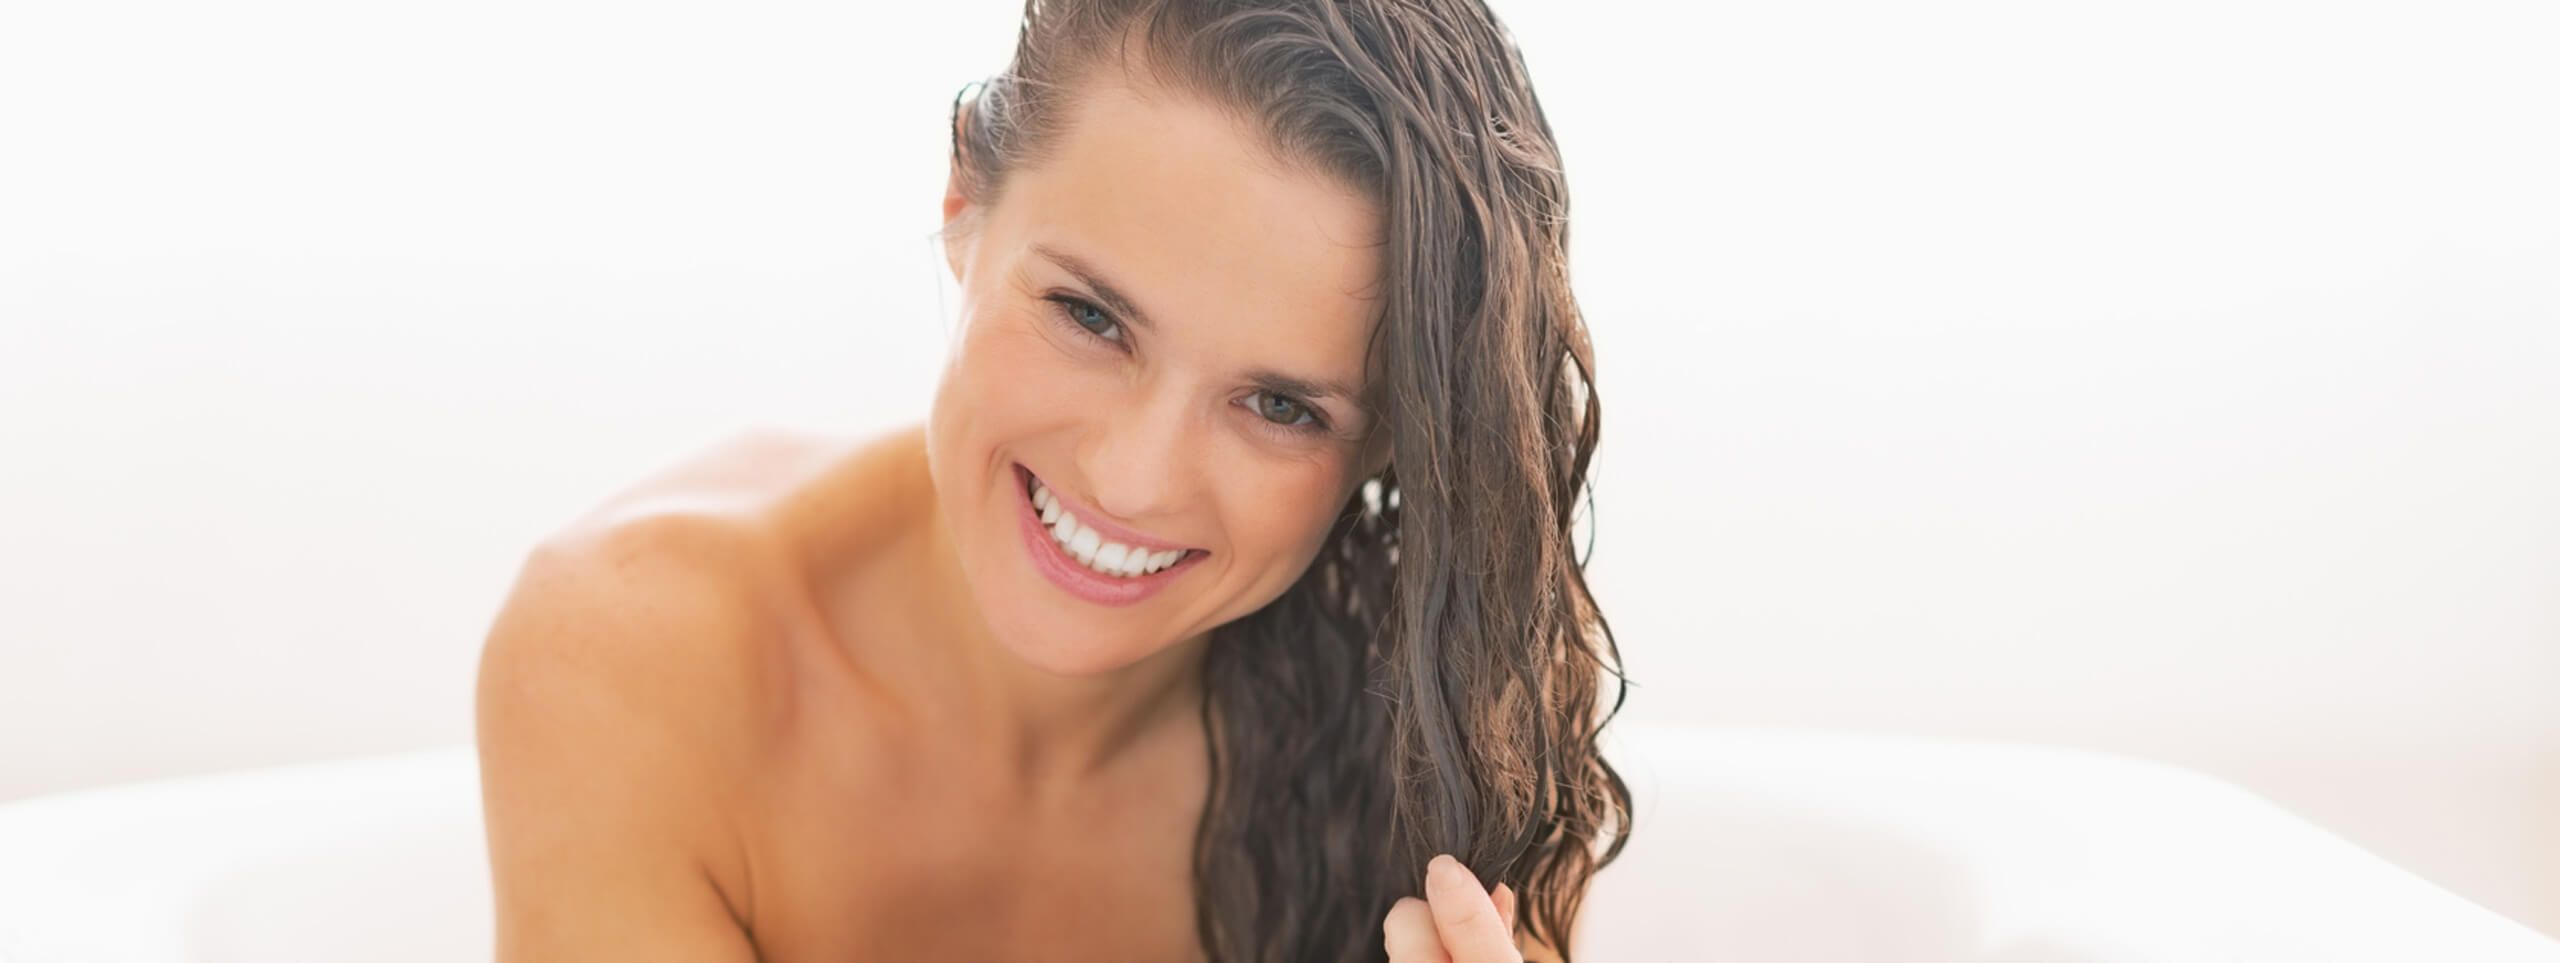 Smiling woman with wet hairstyle